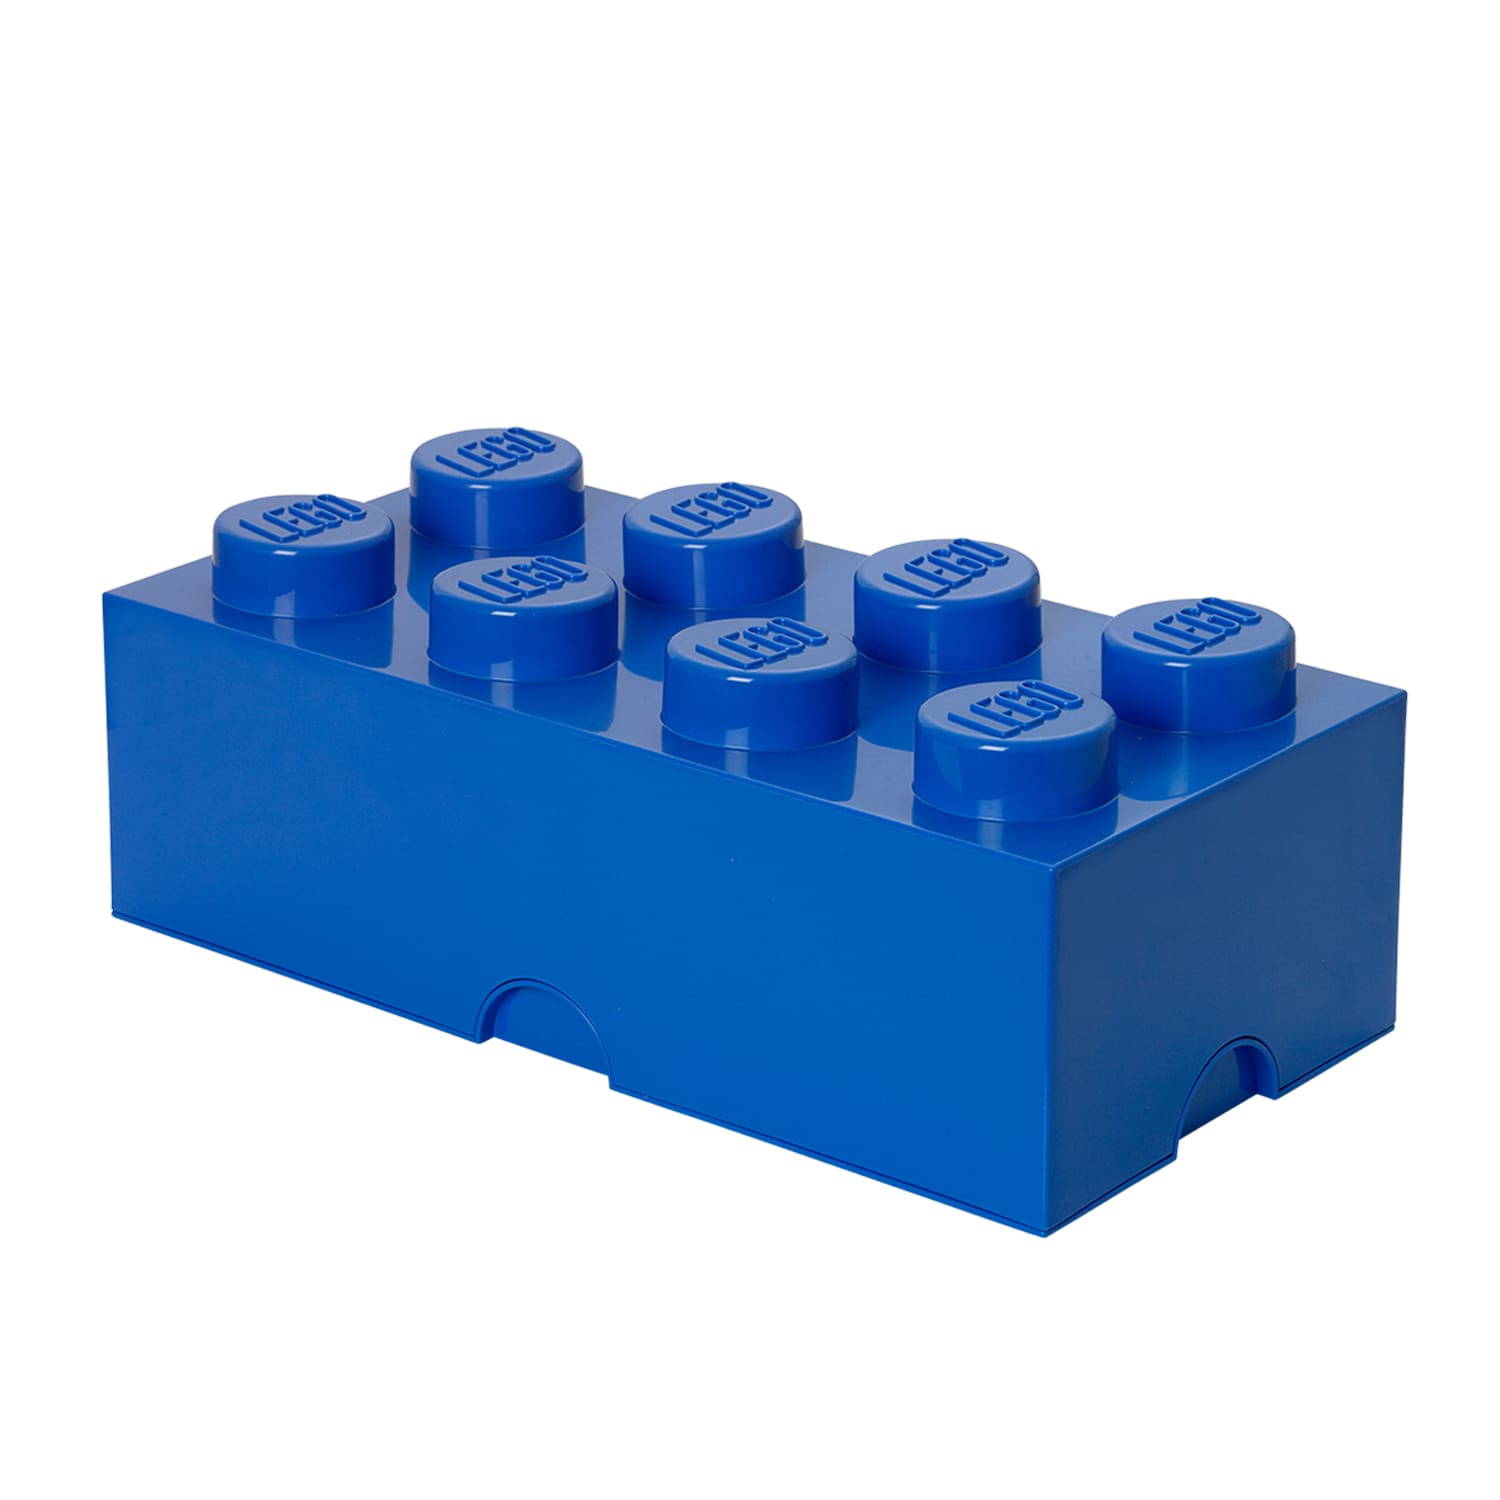 Lego Storage Brick 8 Bright Blue (G848442025027)